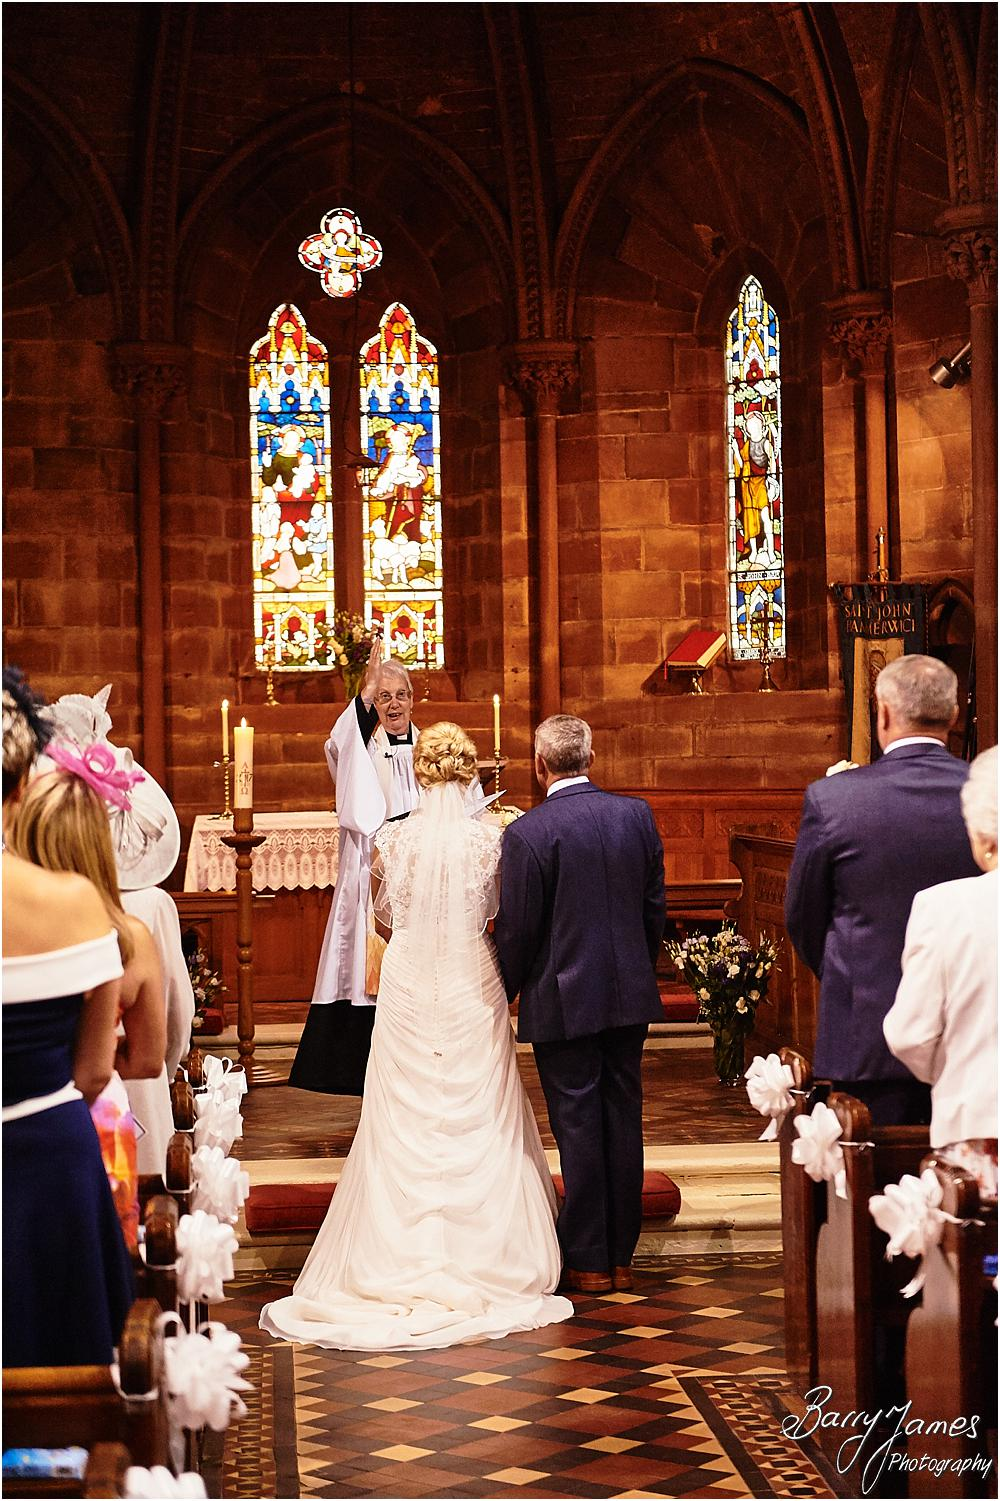 Unobtrusive photographs of the beautiful wedding ceremony at St Johns Church in Hammerwich by Burntwood Wedding Photographer Barry James